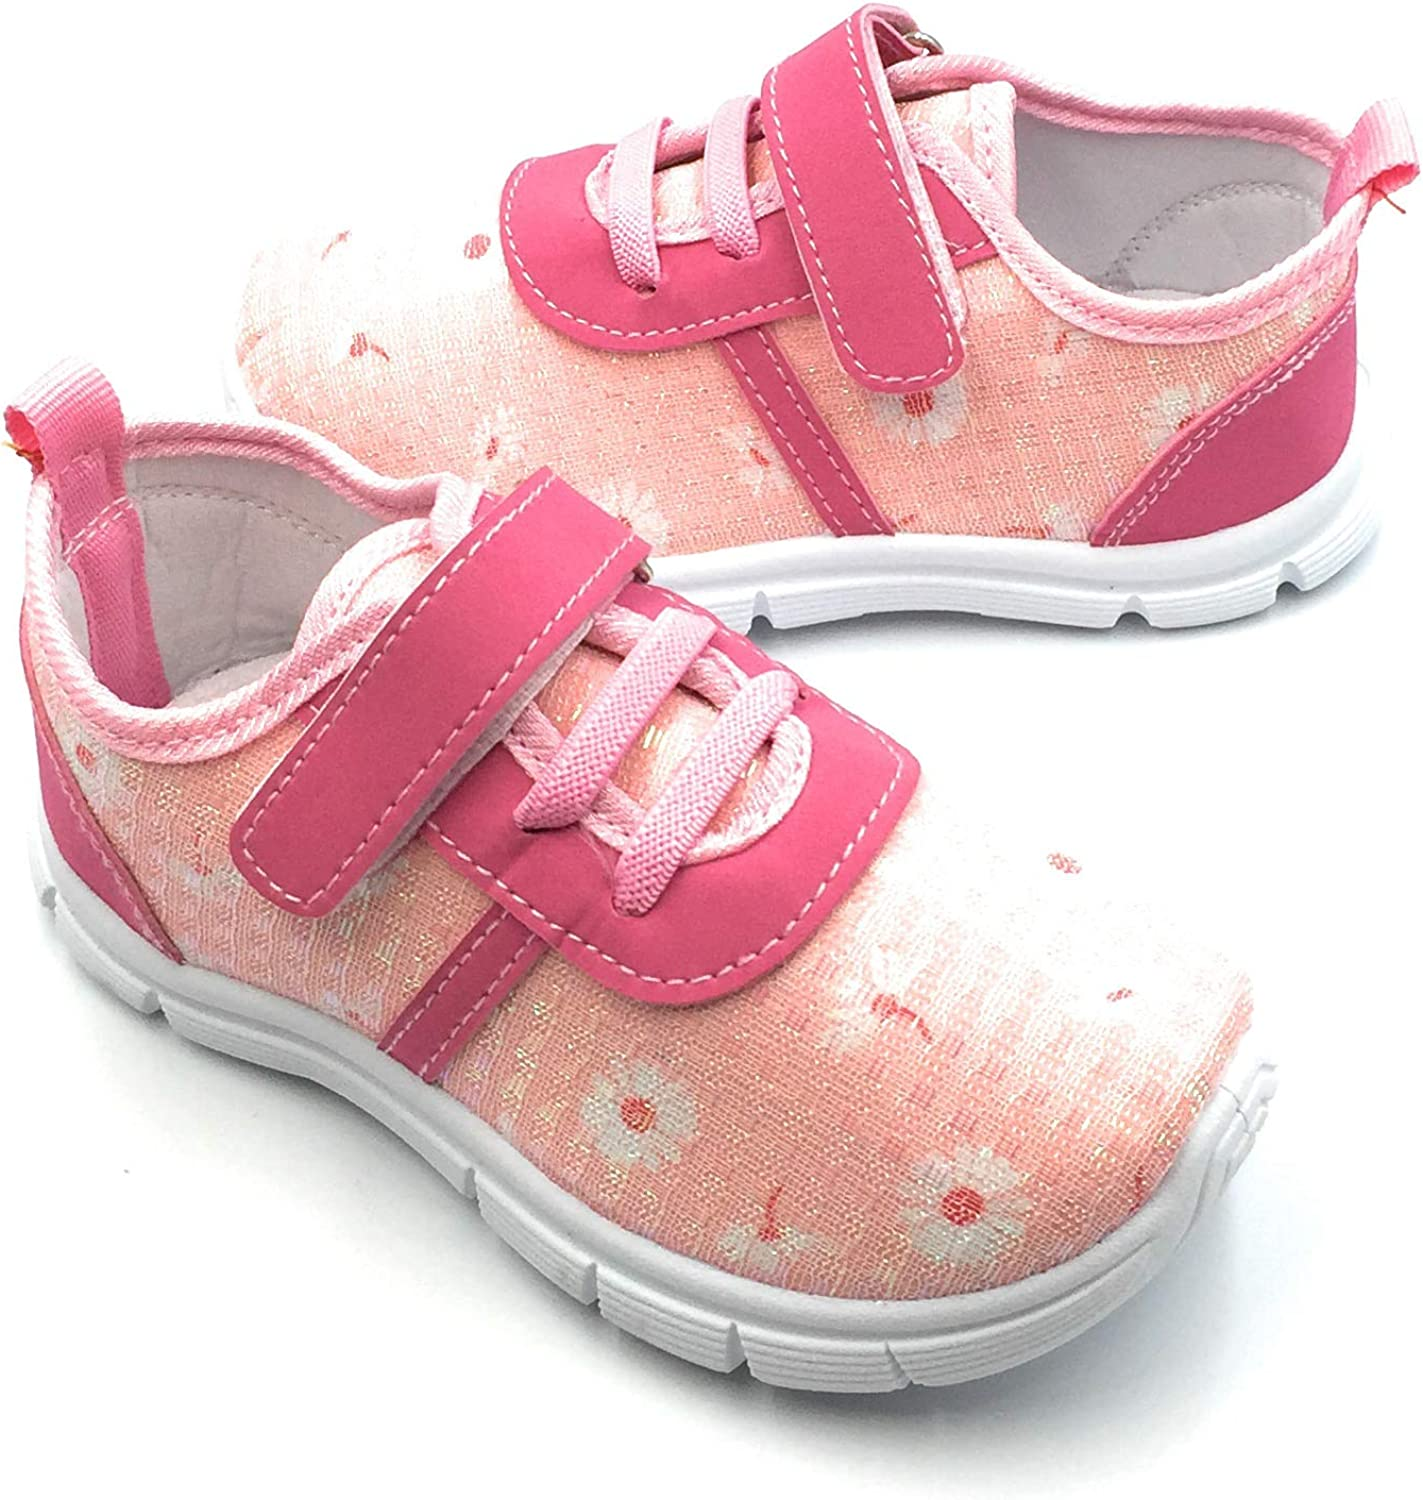 Bless Children Lightweight Girls Sneakers for Baby Toddler Kids Fashion Shoes,Pink506,7 M US Toddler